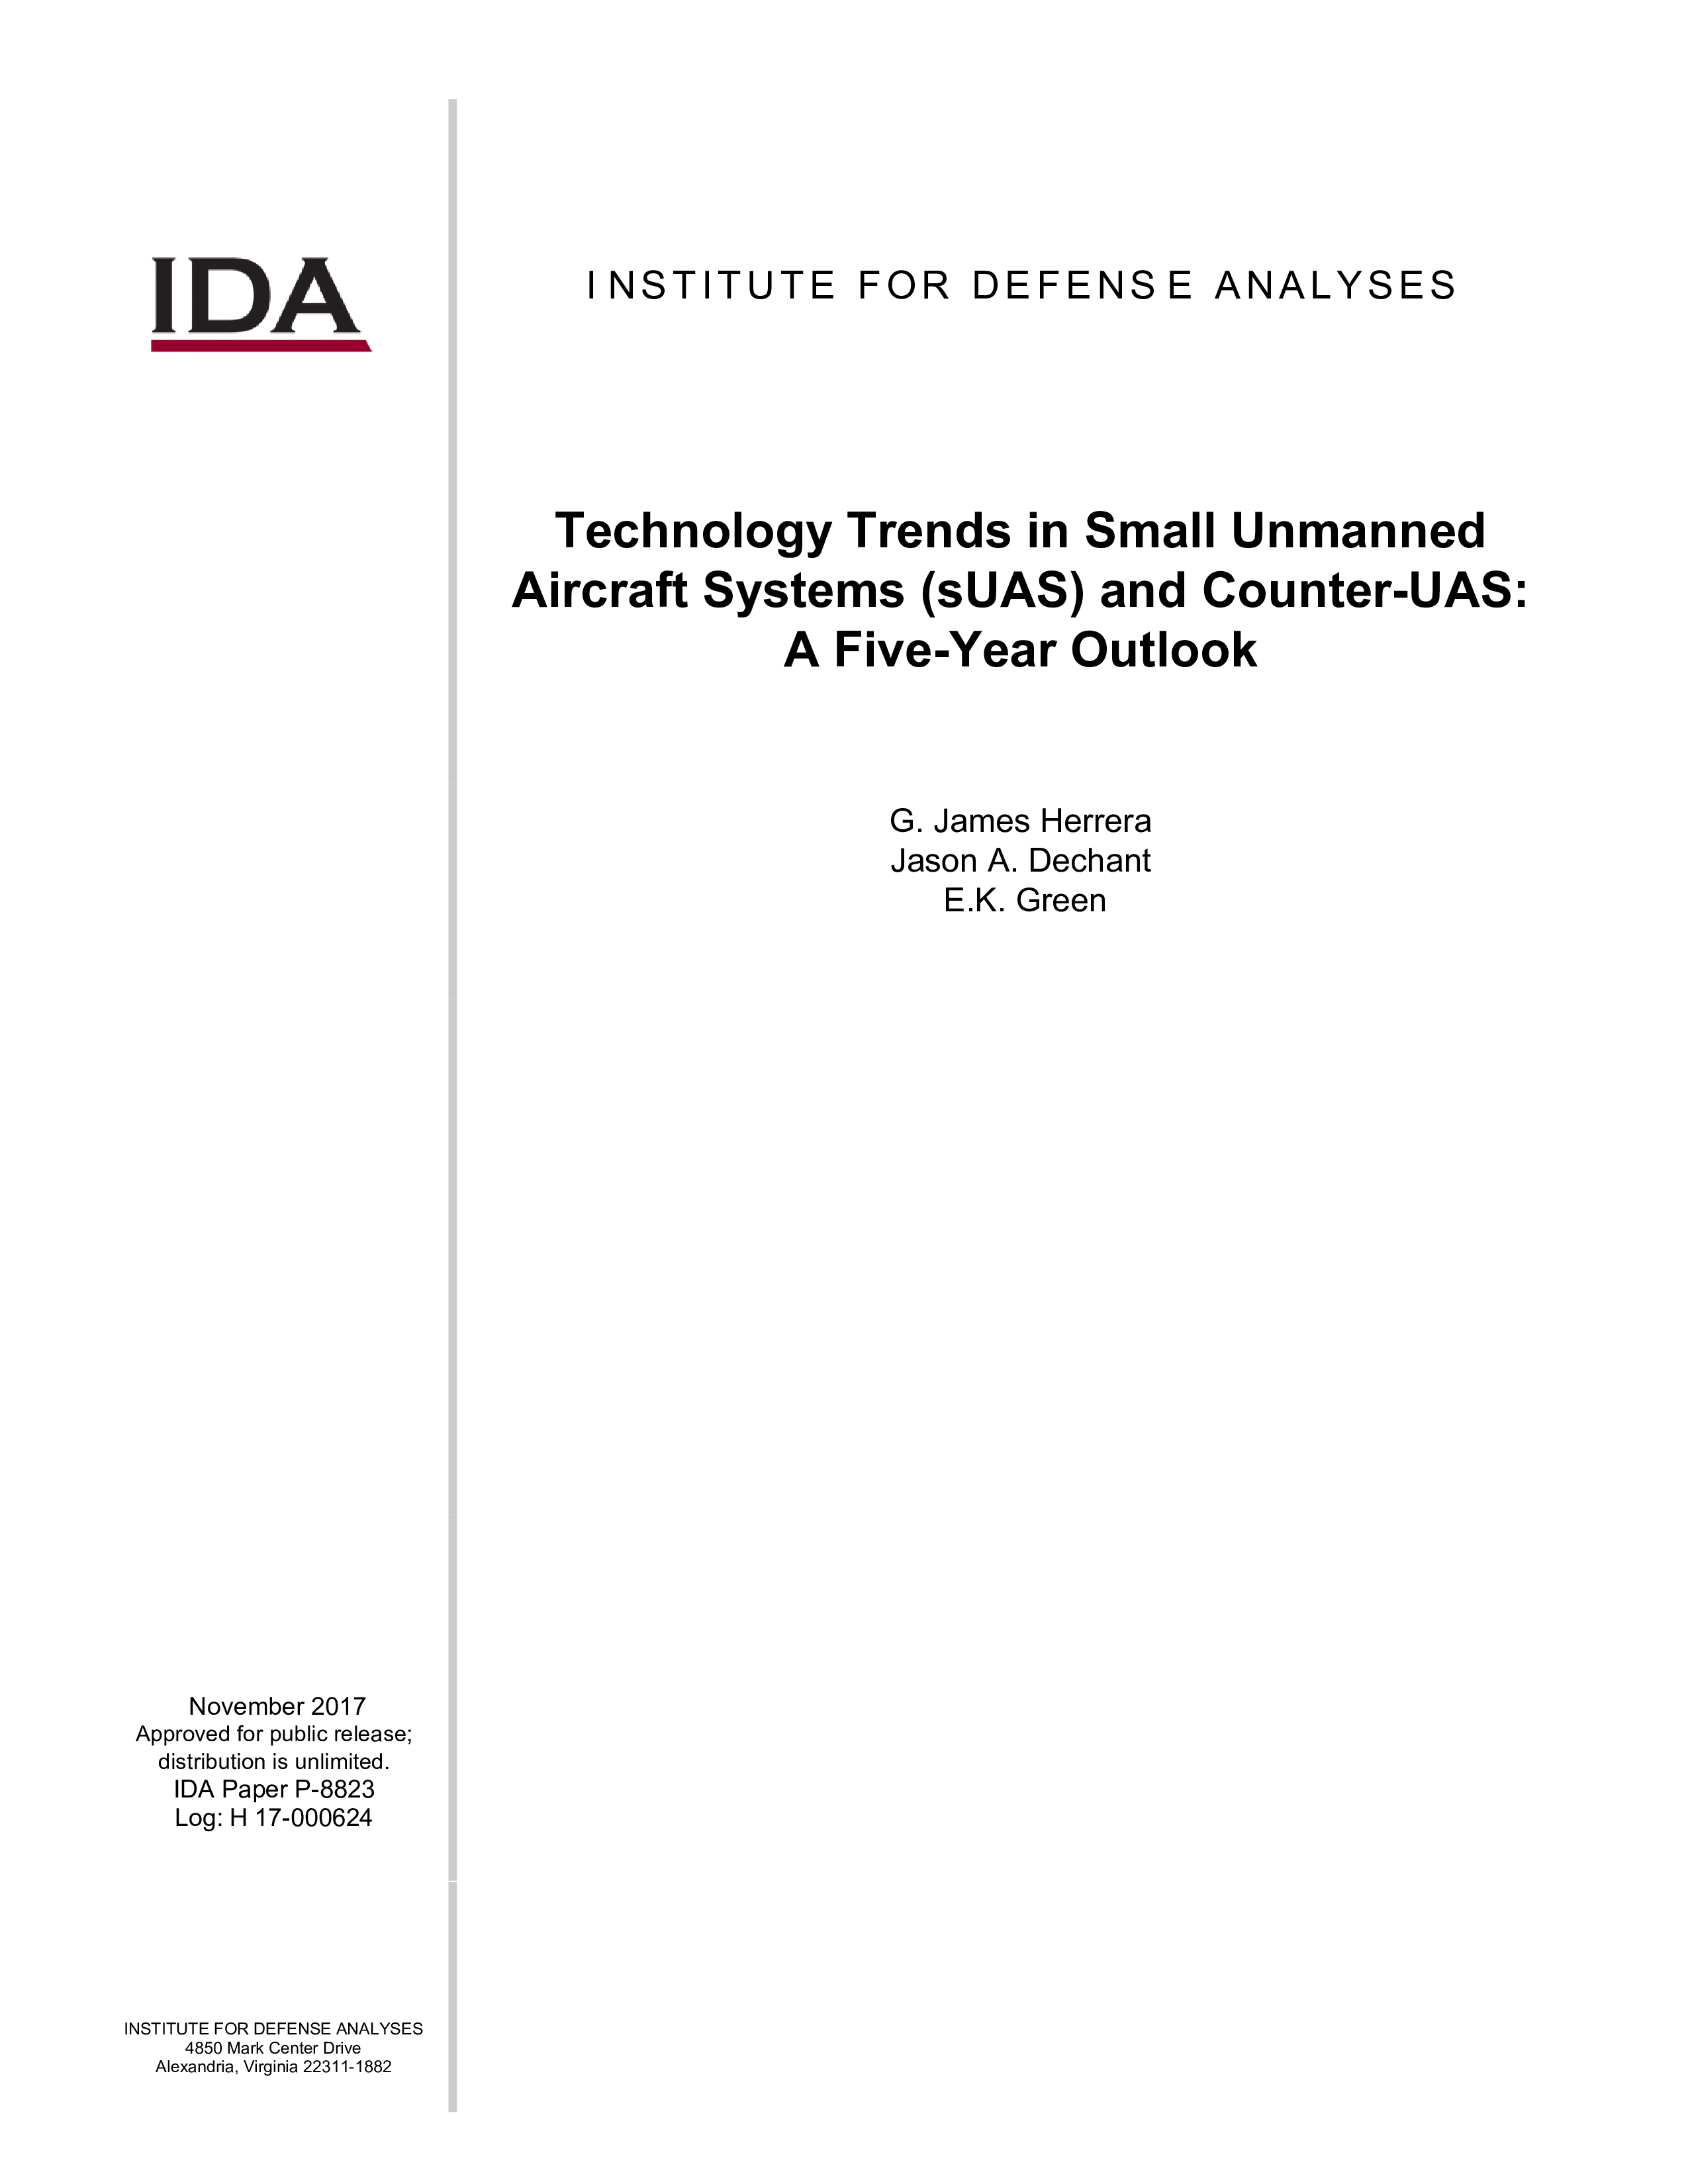 Technology Trends in Small Unmanned Aircraft Systems (sUAS) and Counter UAS: A Five Year Outlook